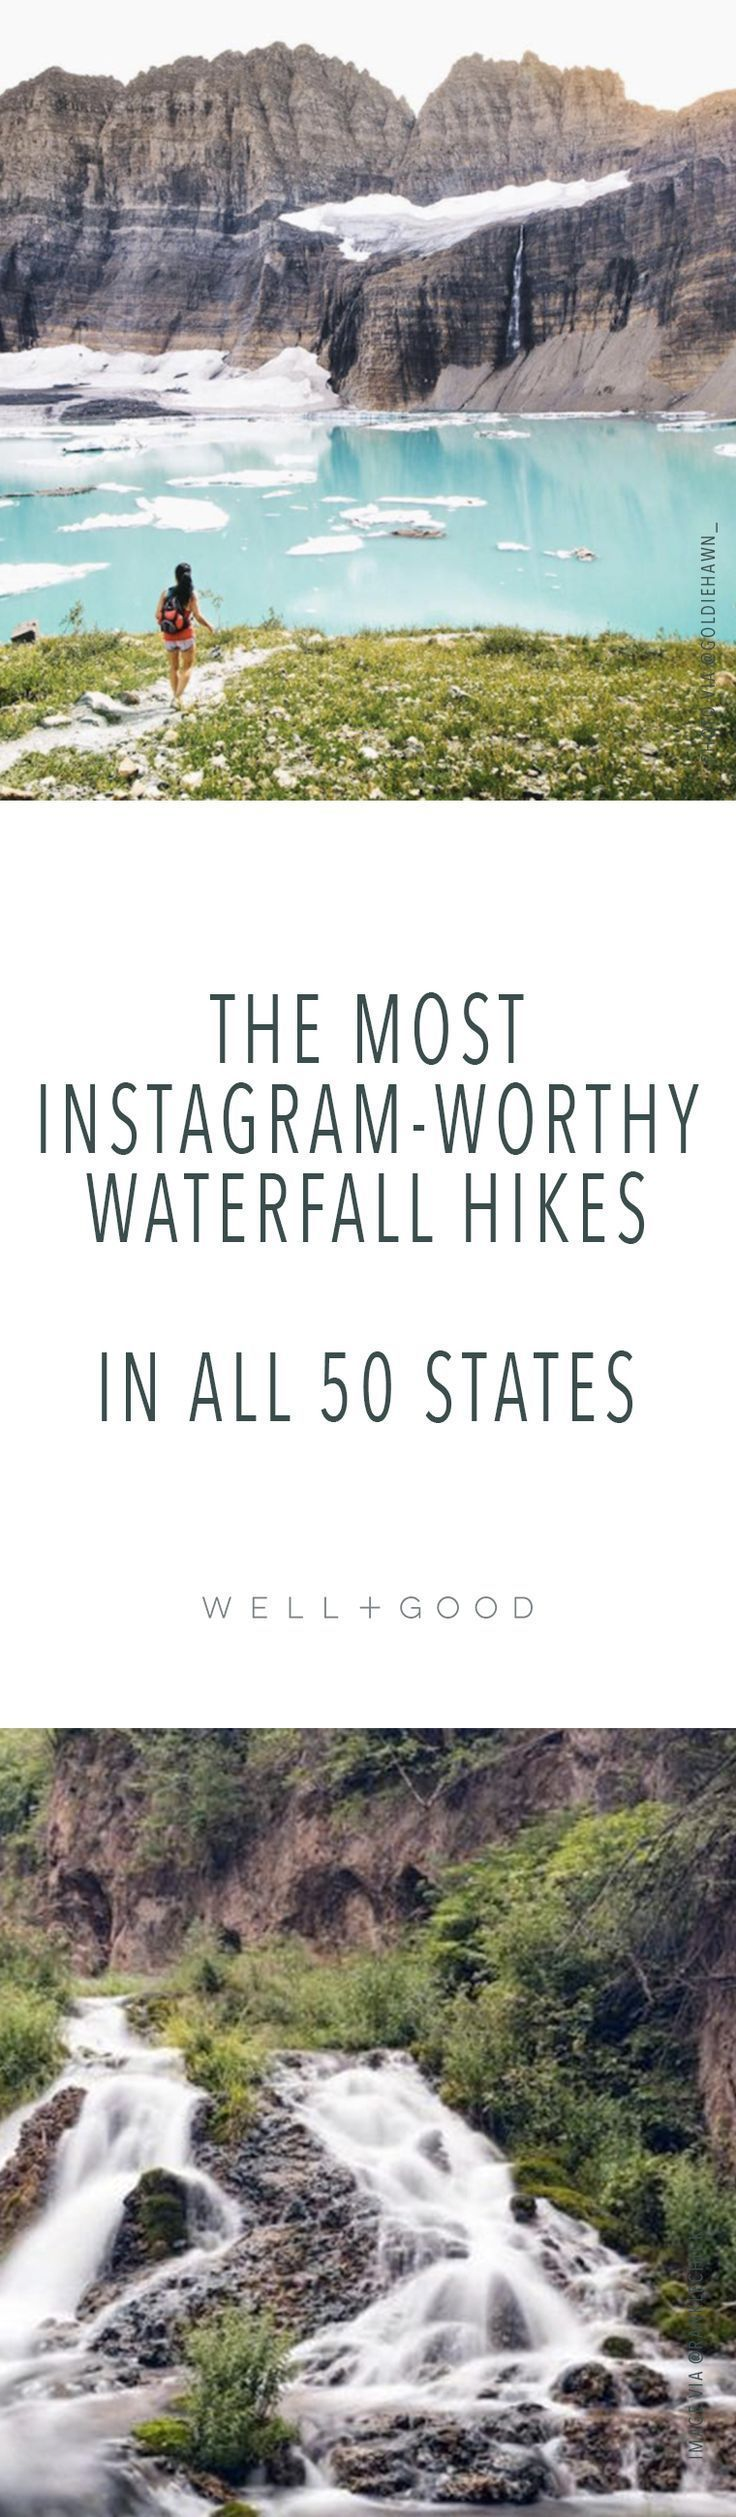 The best waterfall hikes in all 50 states